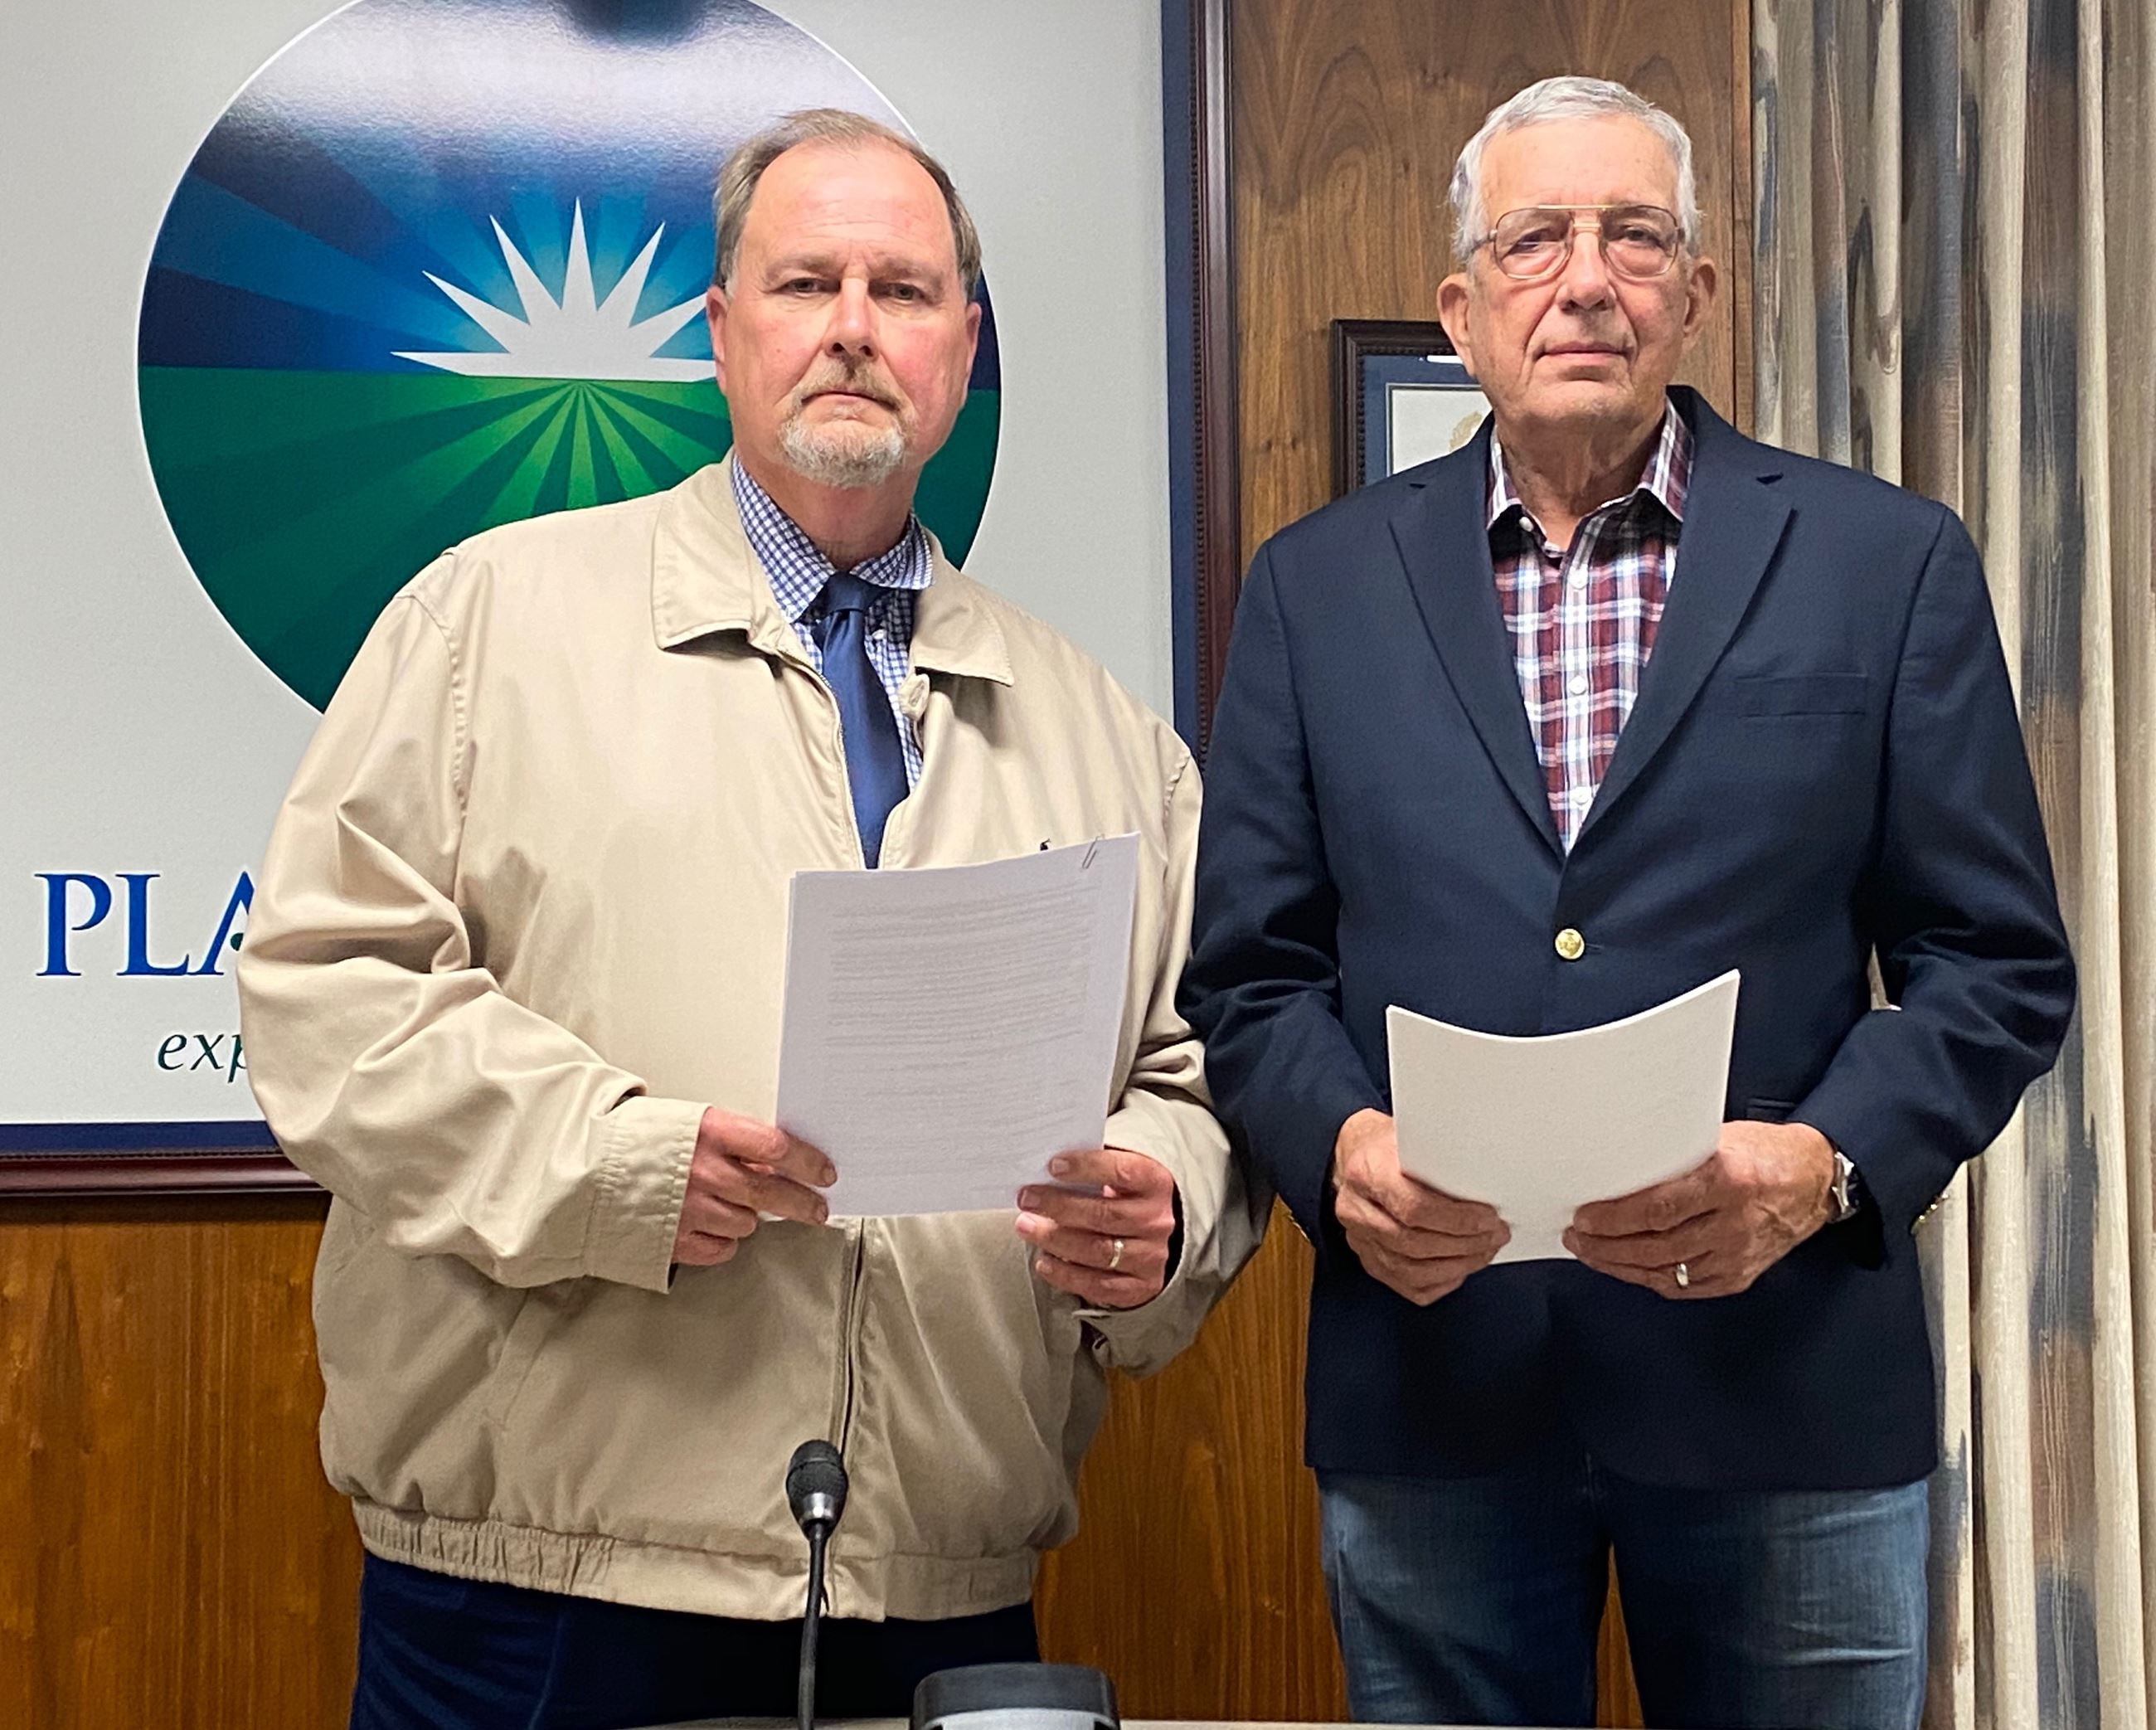 Judge David Mull and Plainview Mayor Wendell Dunlap